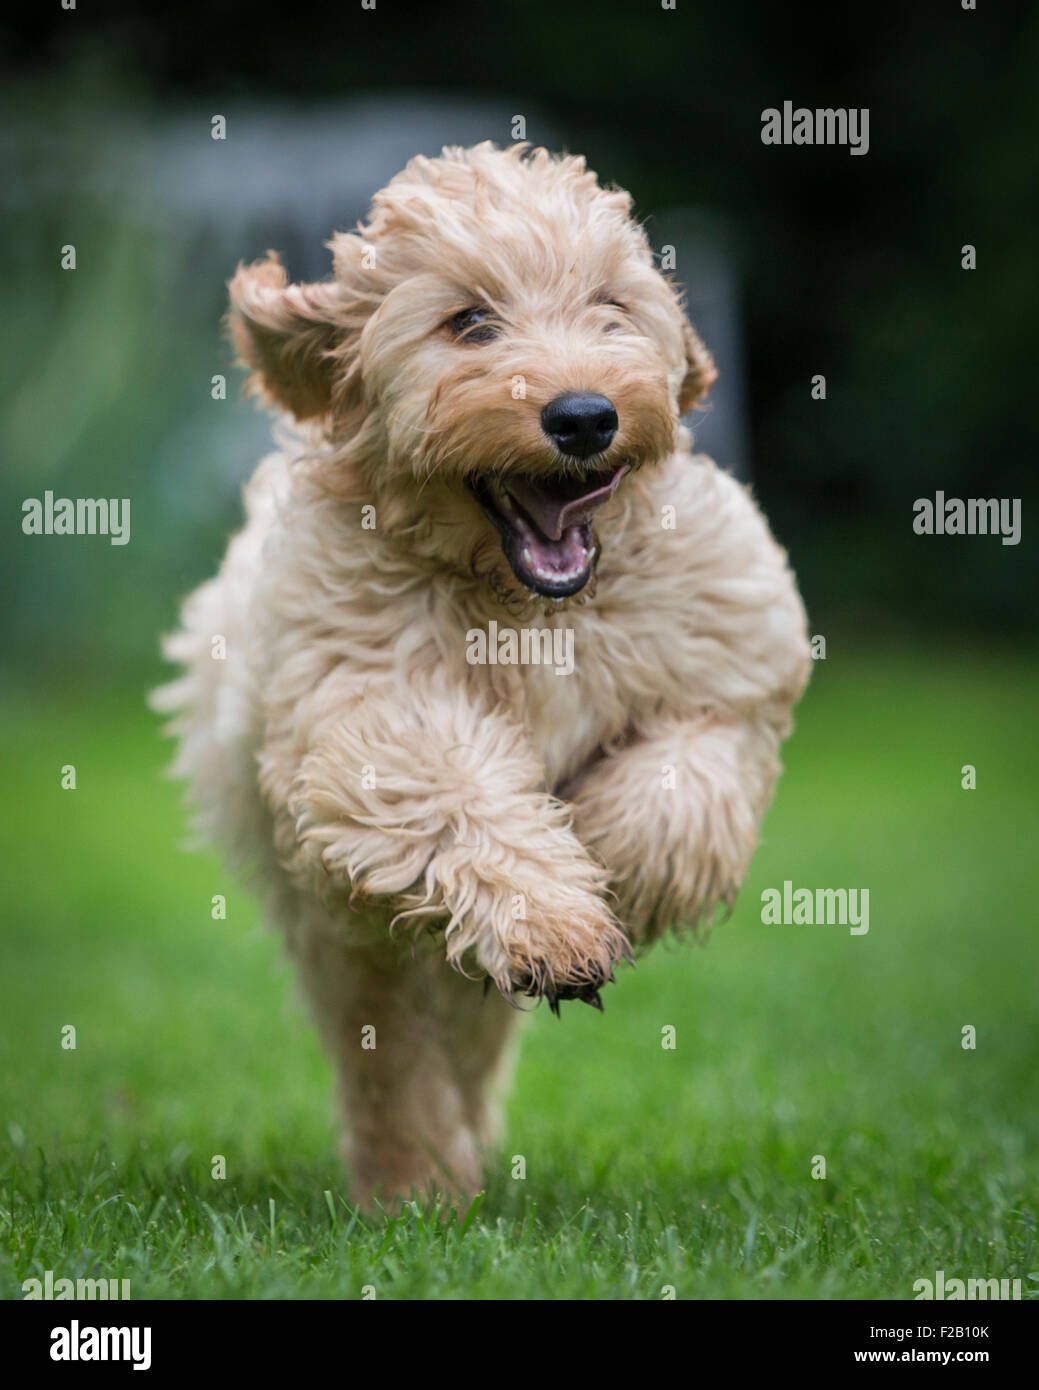 Four month old Cockapoo puppy running in garden - Stock Image